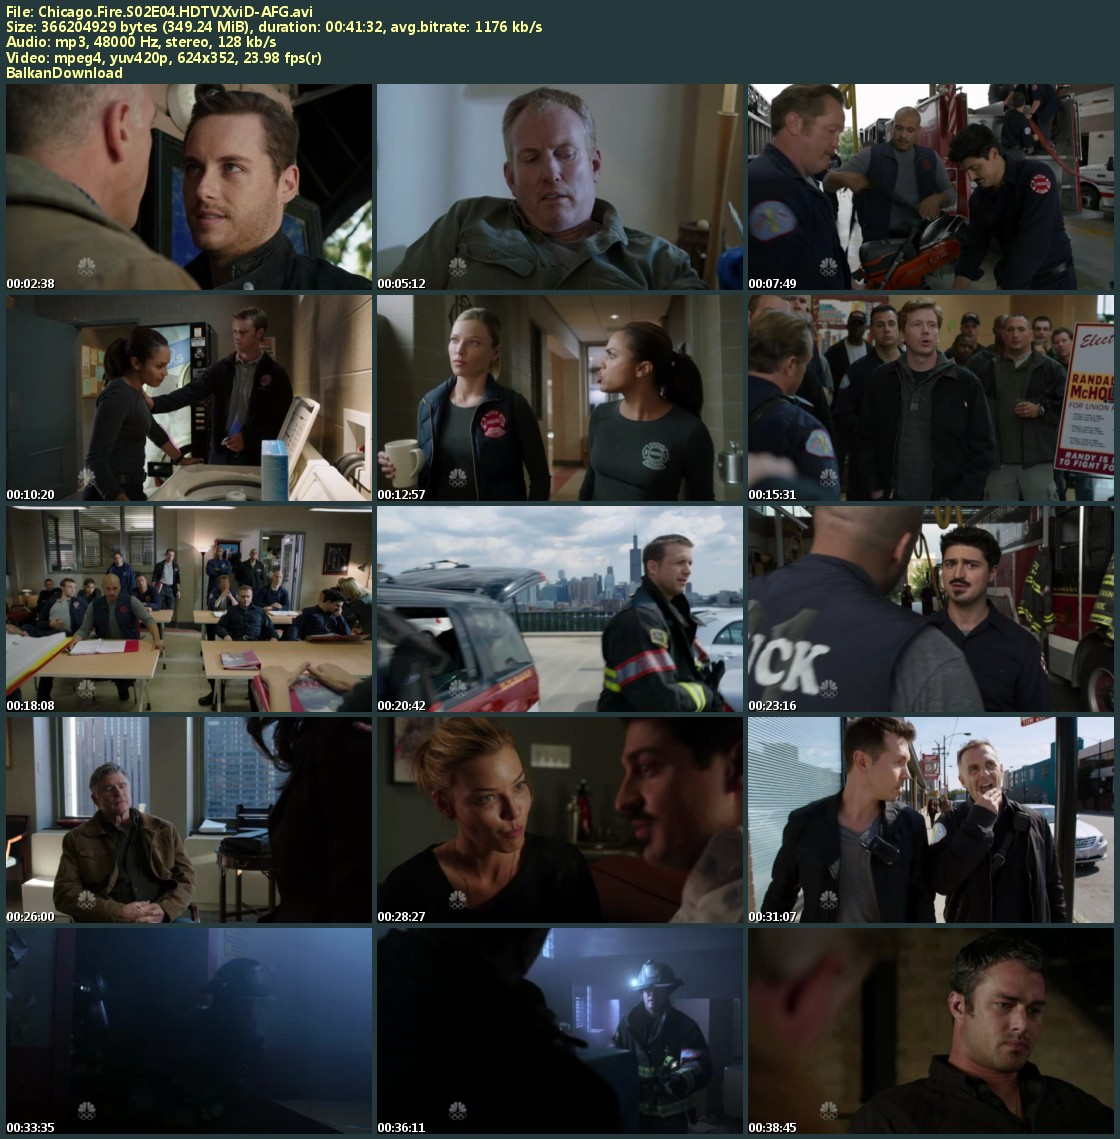 chicago.fire.s02e04.h1uyrd.jpg